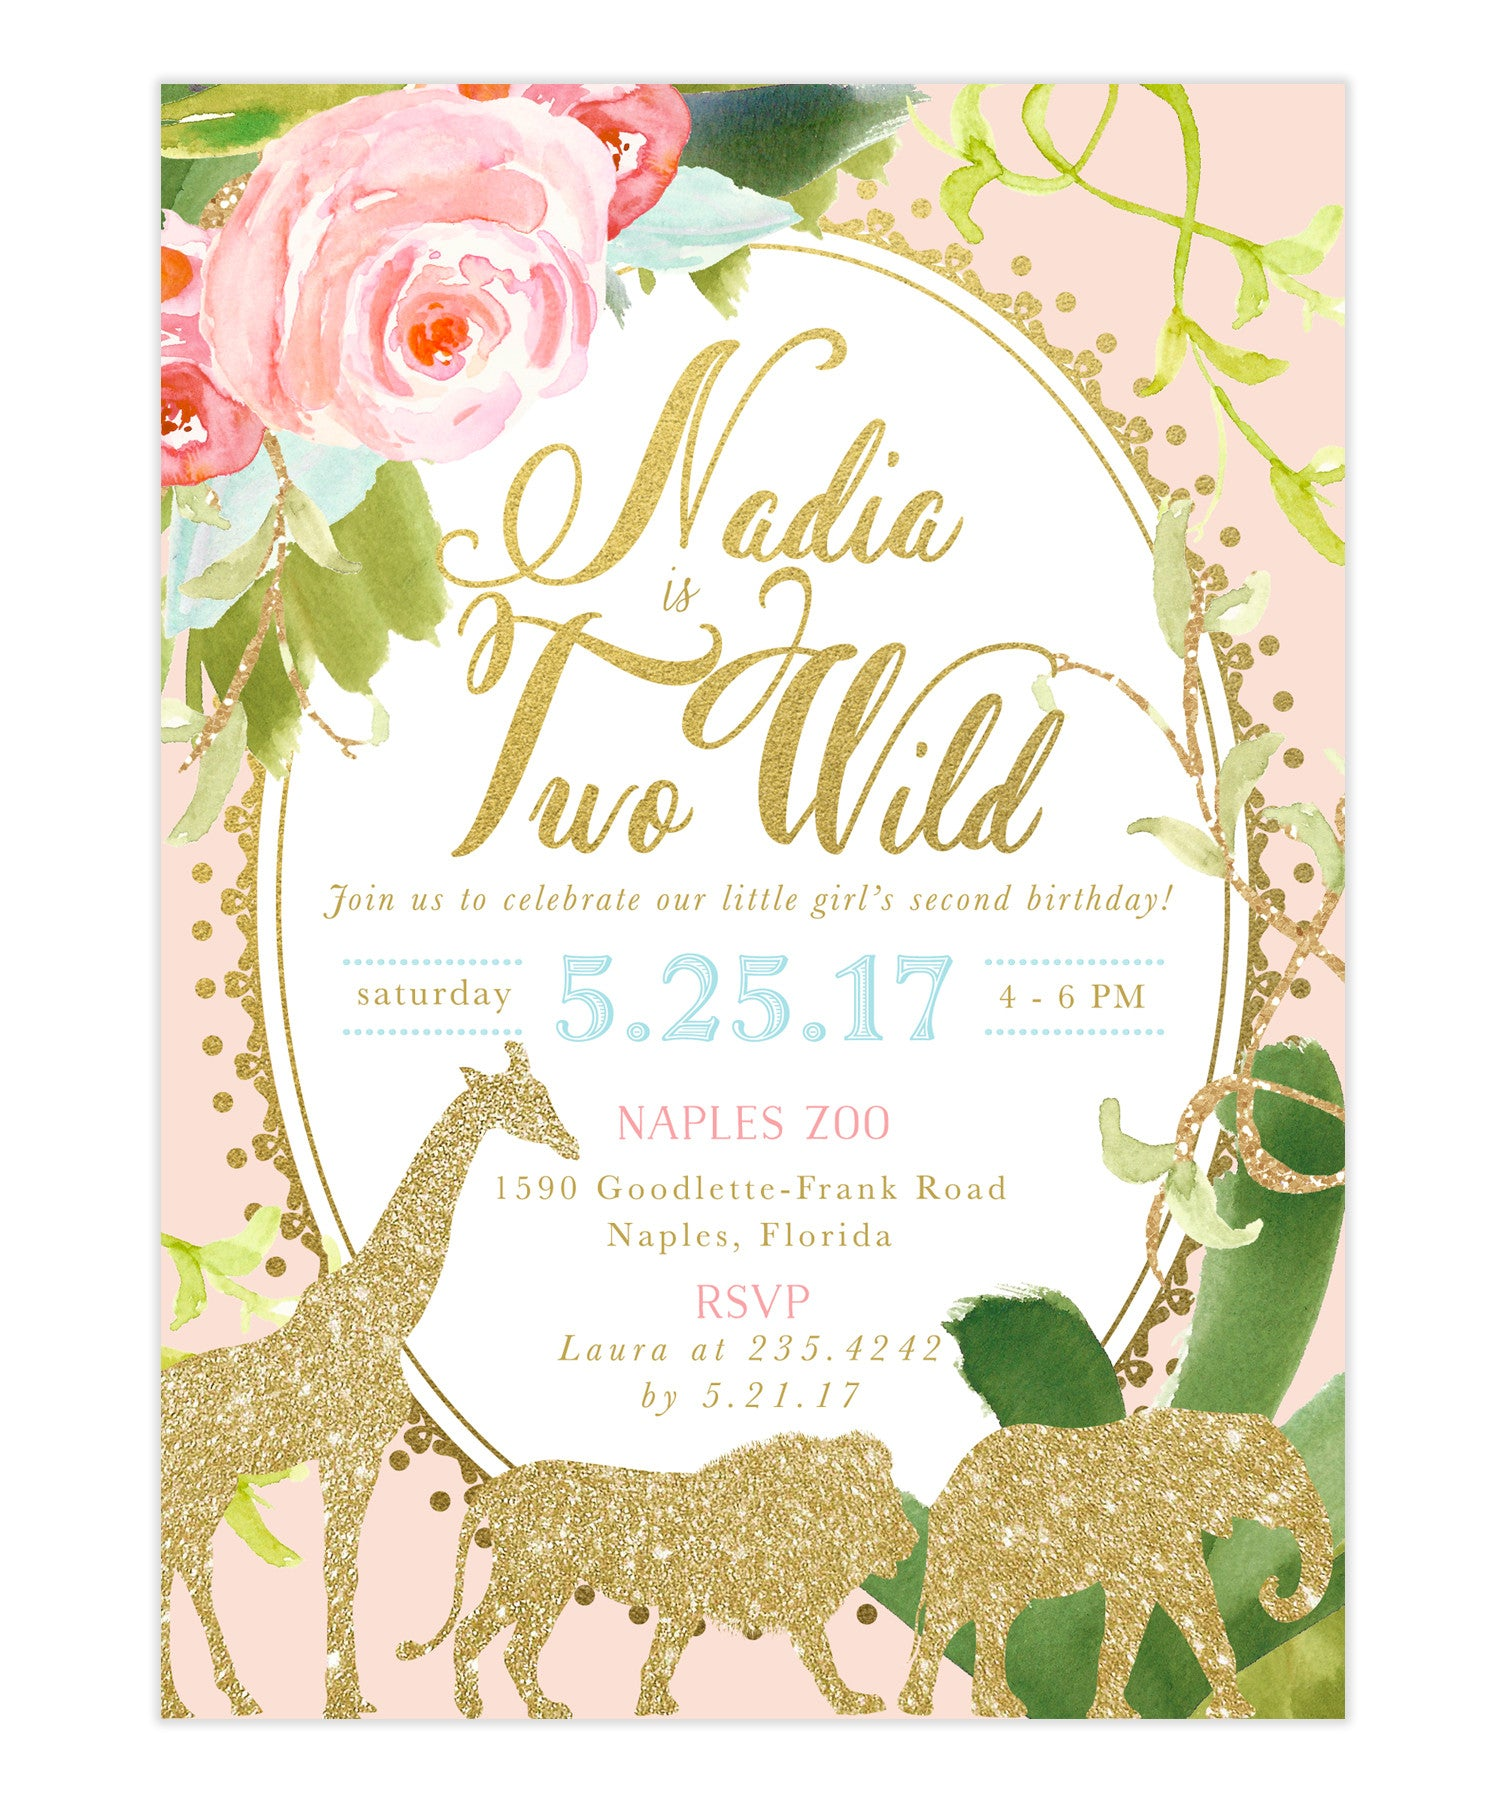 Glam Safari Jungle Girl Second 2nd Birthday Invitation Tropical Flowers Giraffe